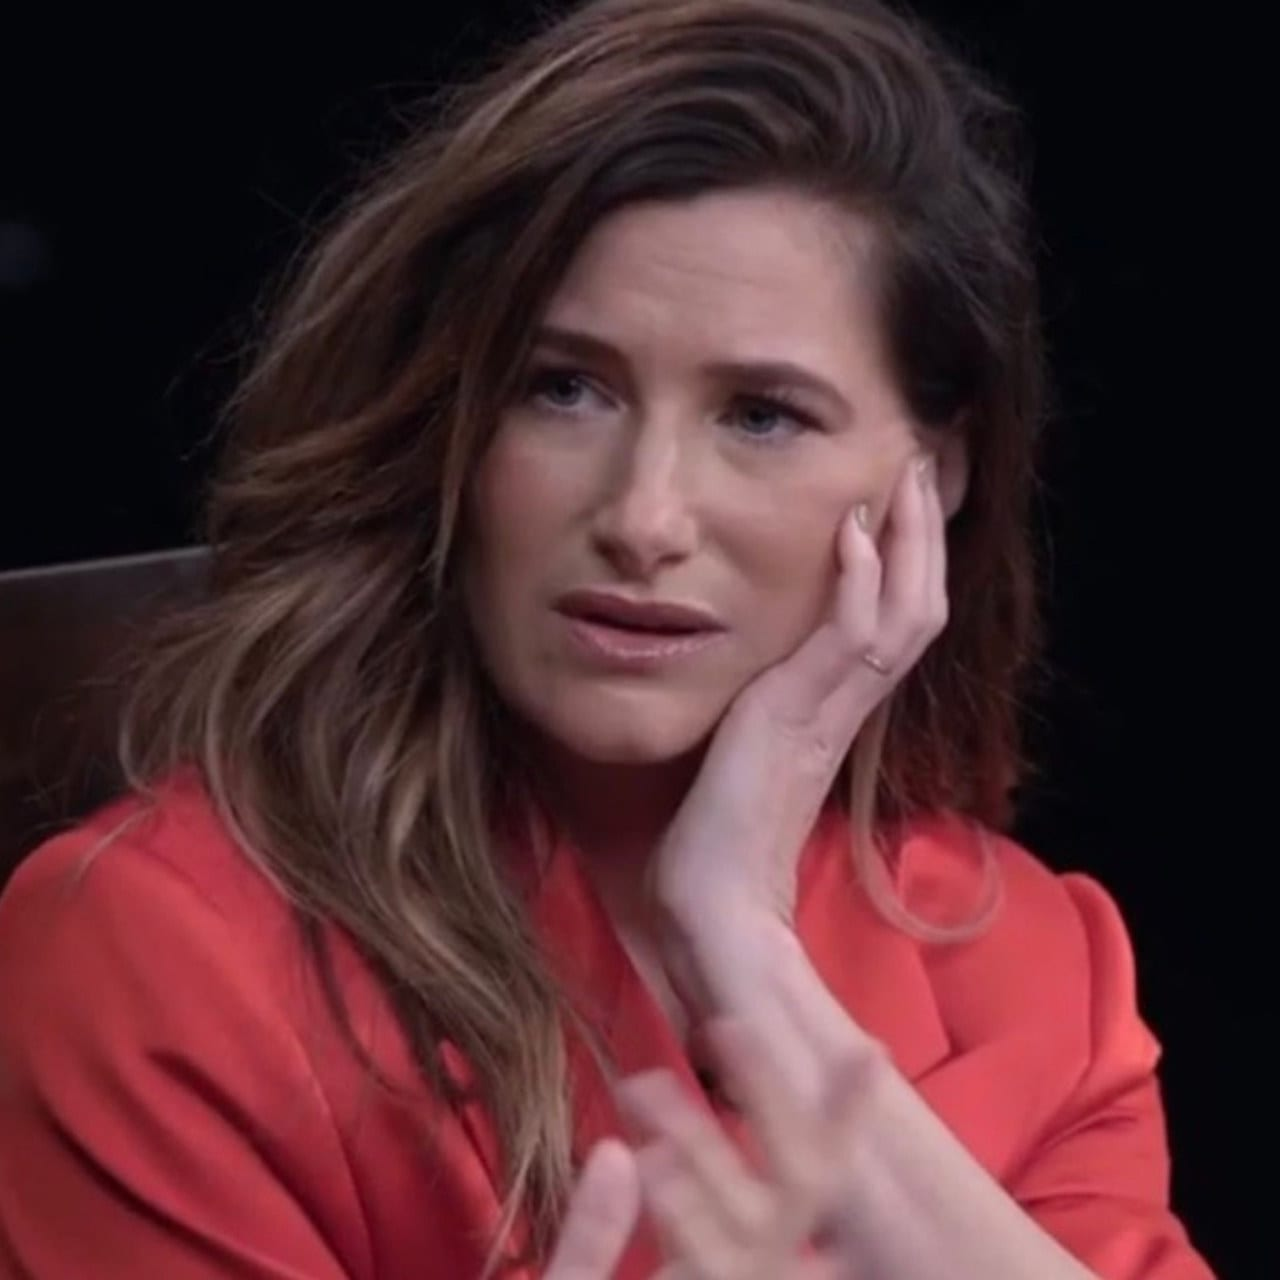 Kathryn Hahn during an Actress Roundtable discussion for the Hollywood Reporter